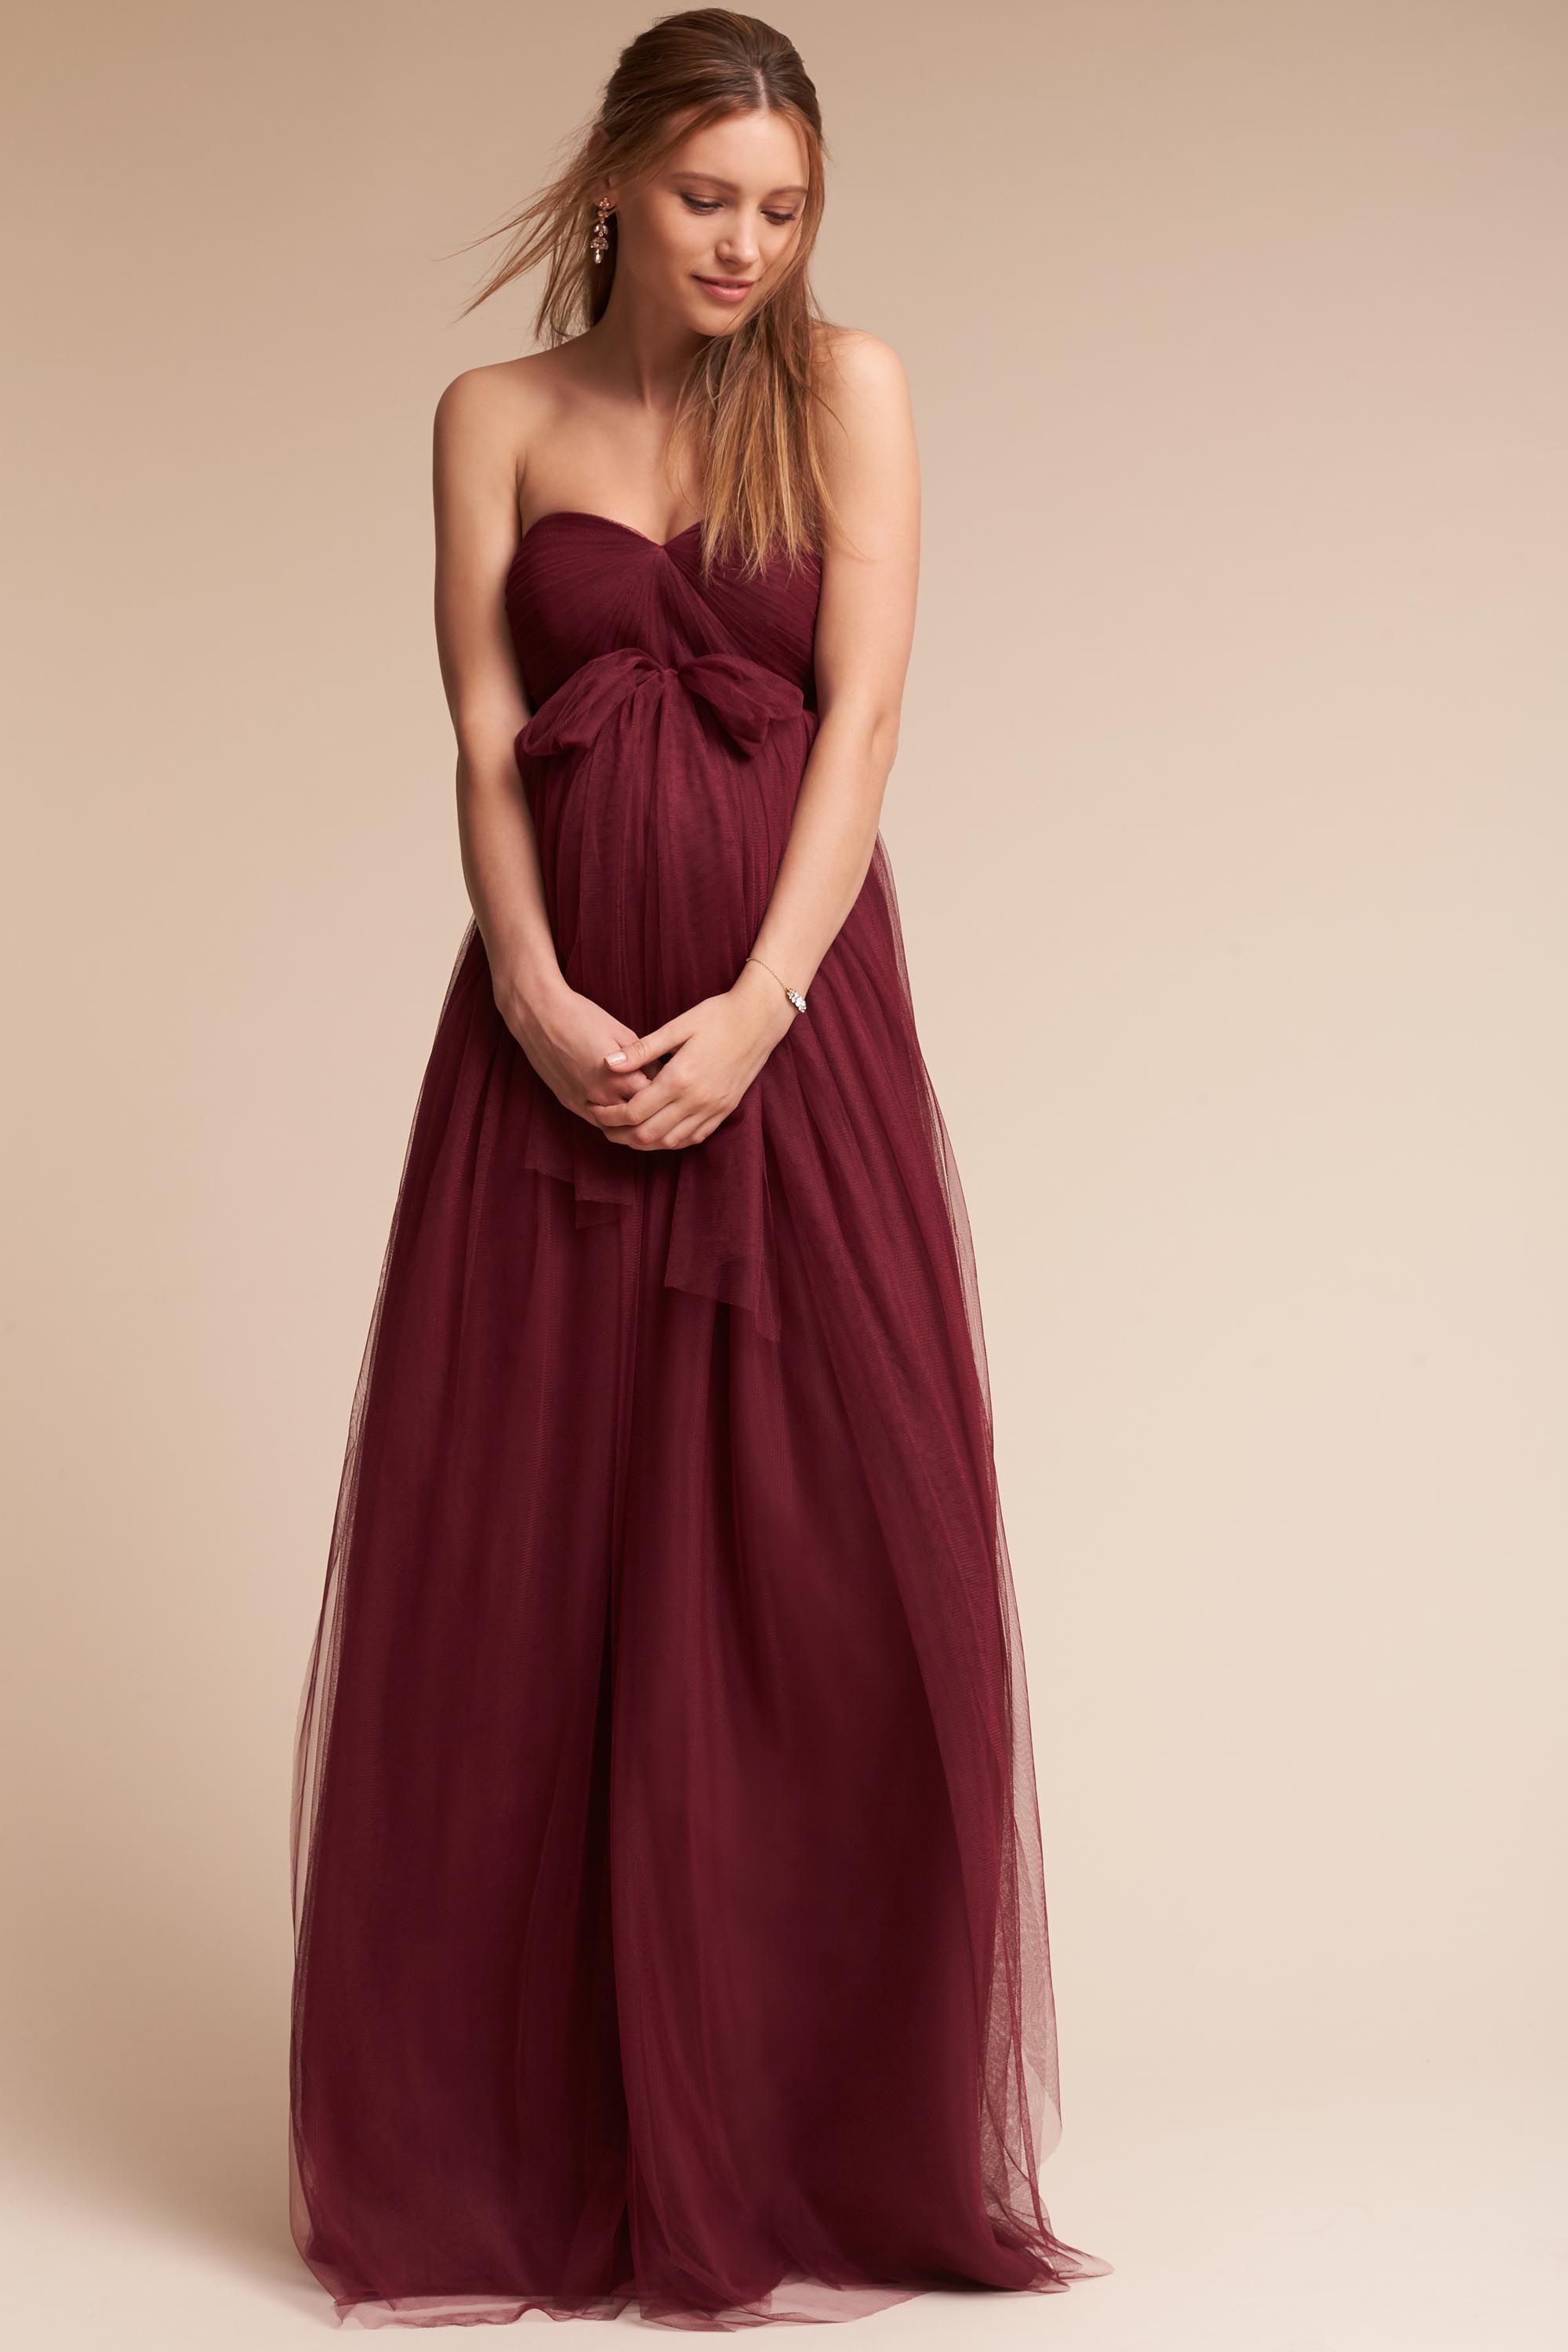 Serafina maternity dress blush in bridal party bhldn this review is fromserafina maternity dress ombrellifo Choice Image